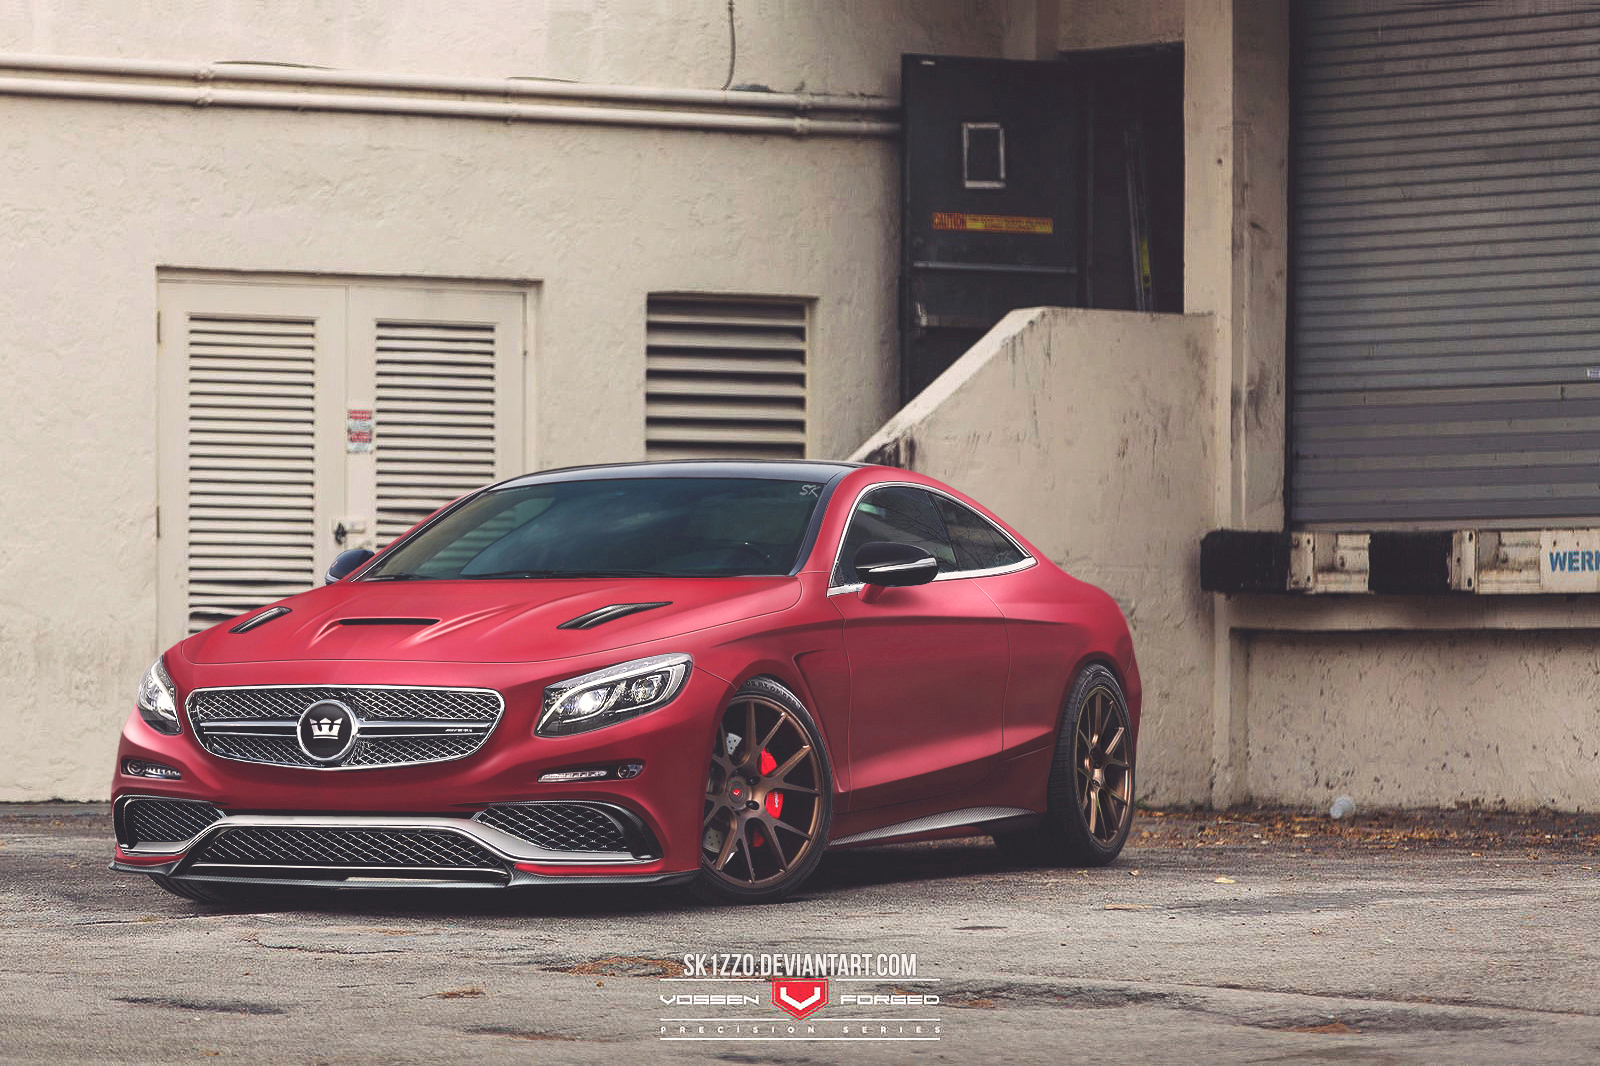 mercedes benz s65 amg coupe by sk1zzo on deviantart. Black Bedroom Furniture Sets. Home Design Ideas